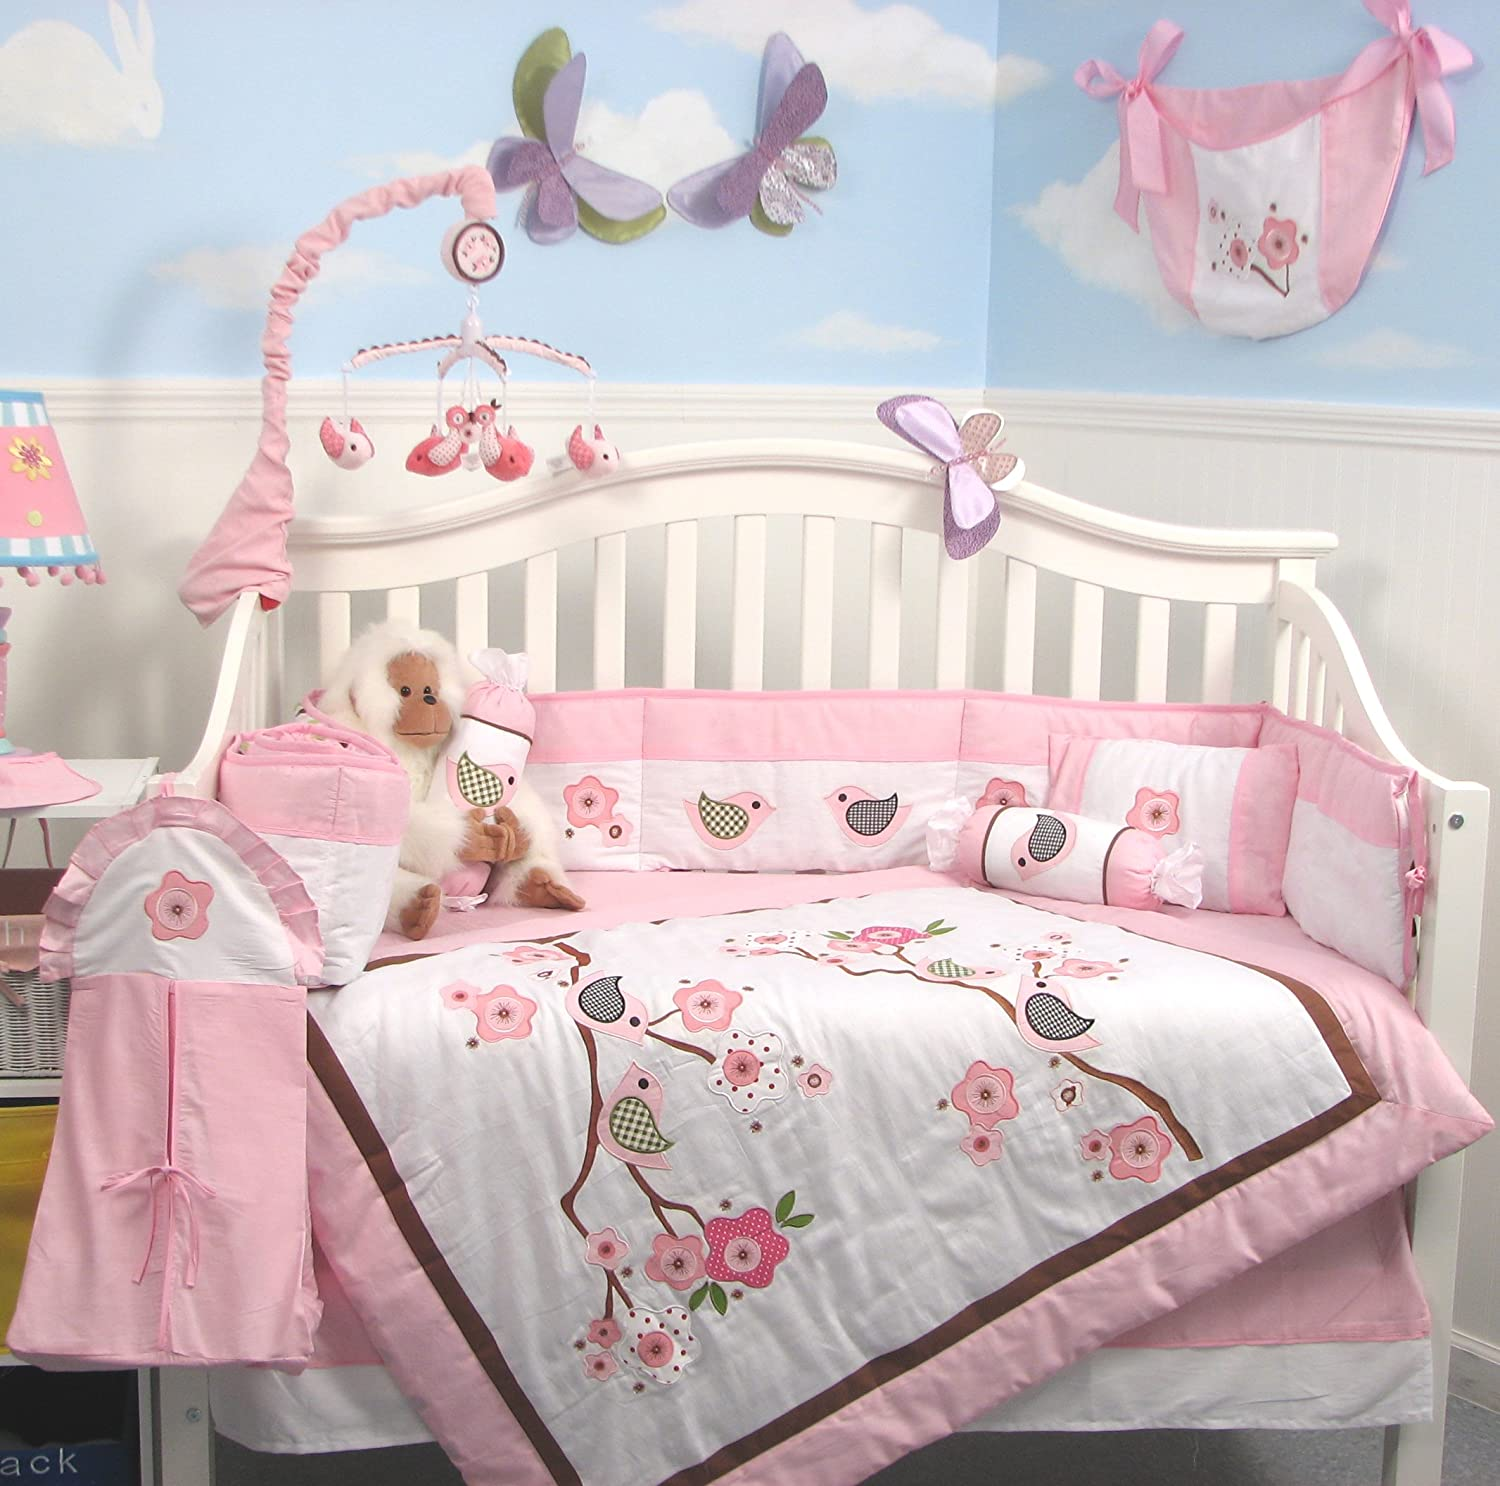 beddings full elizabeth nursery bed crib of s also under as grey bedding well size collection with baby girl chevron unique gray light cheap and kohl plus pink kohls hot sets